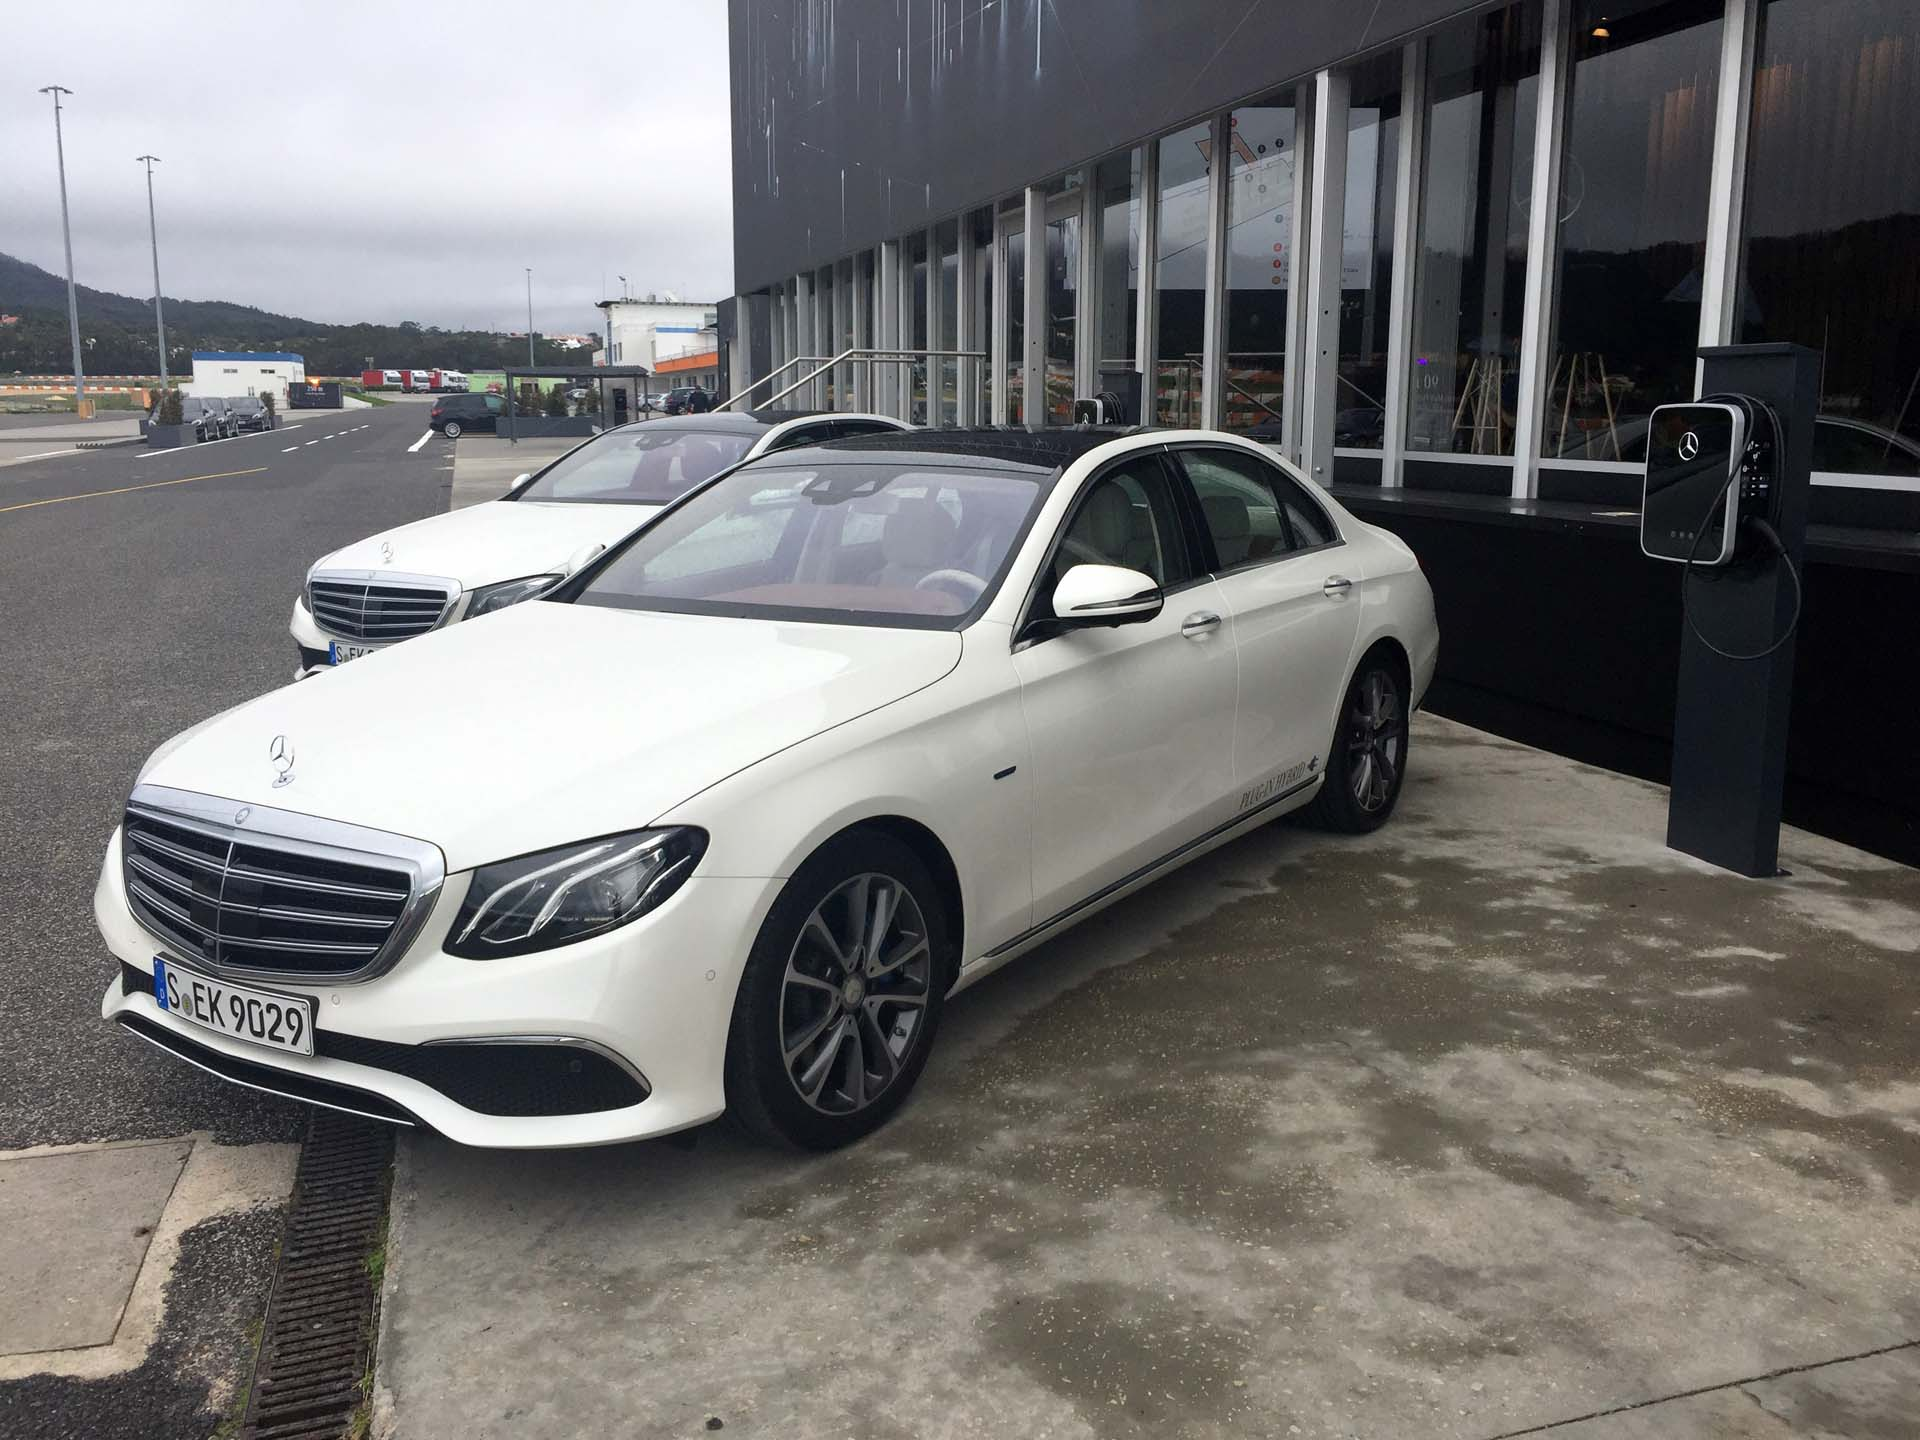 2017 mercedes benz e class. Black Bedroom Furniture Sets. Home Design Ideas